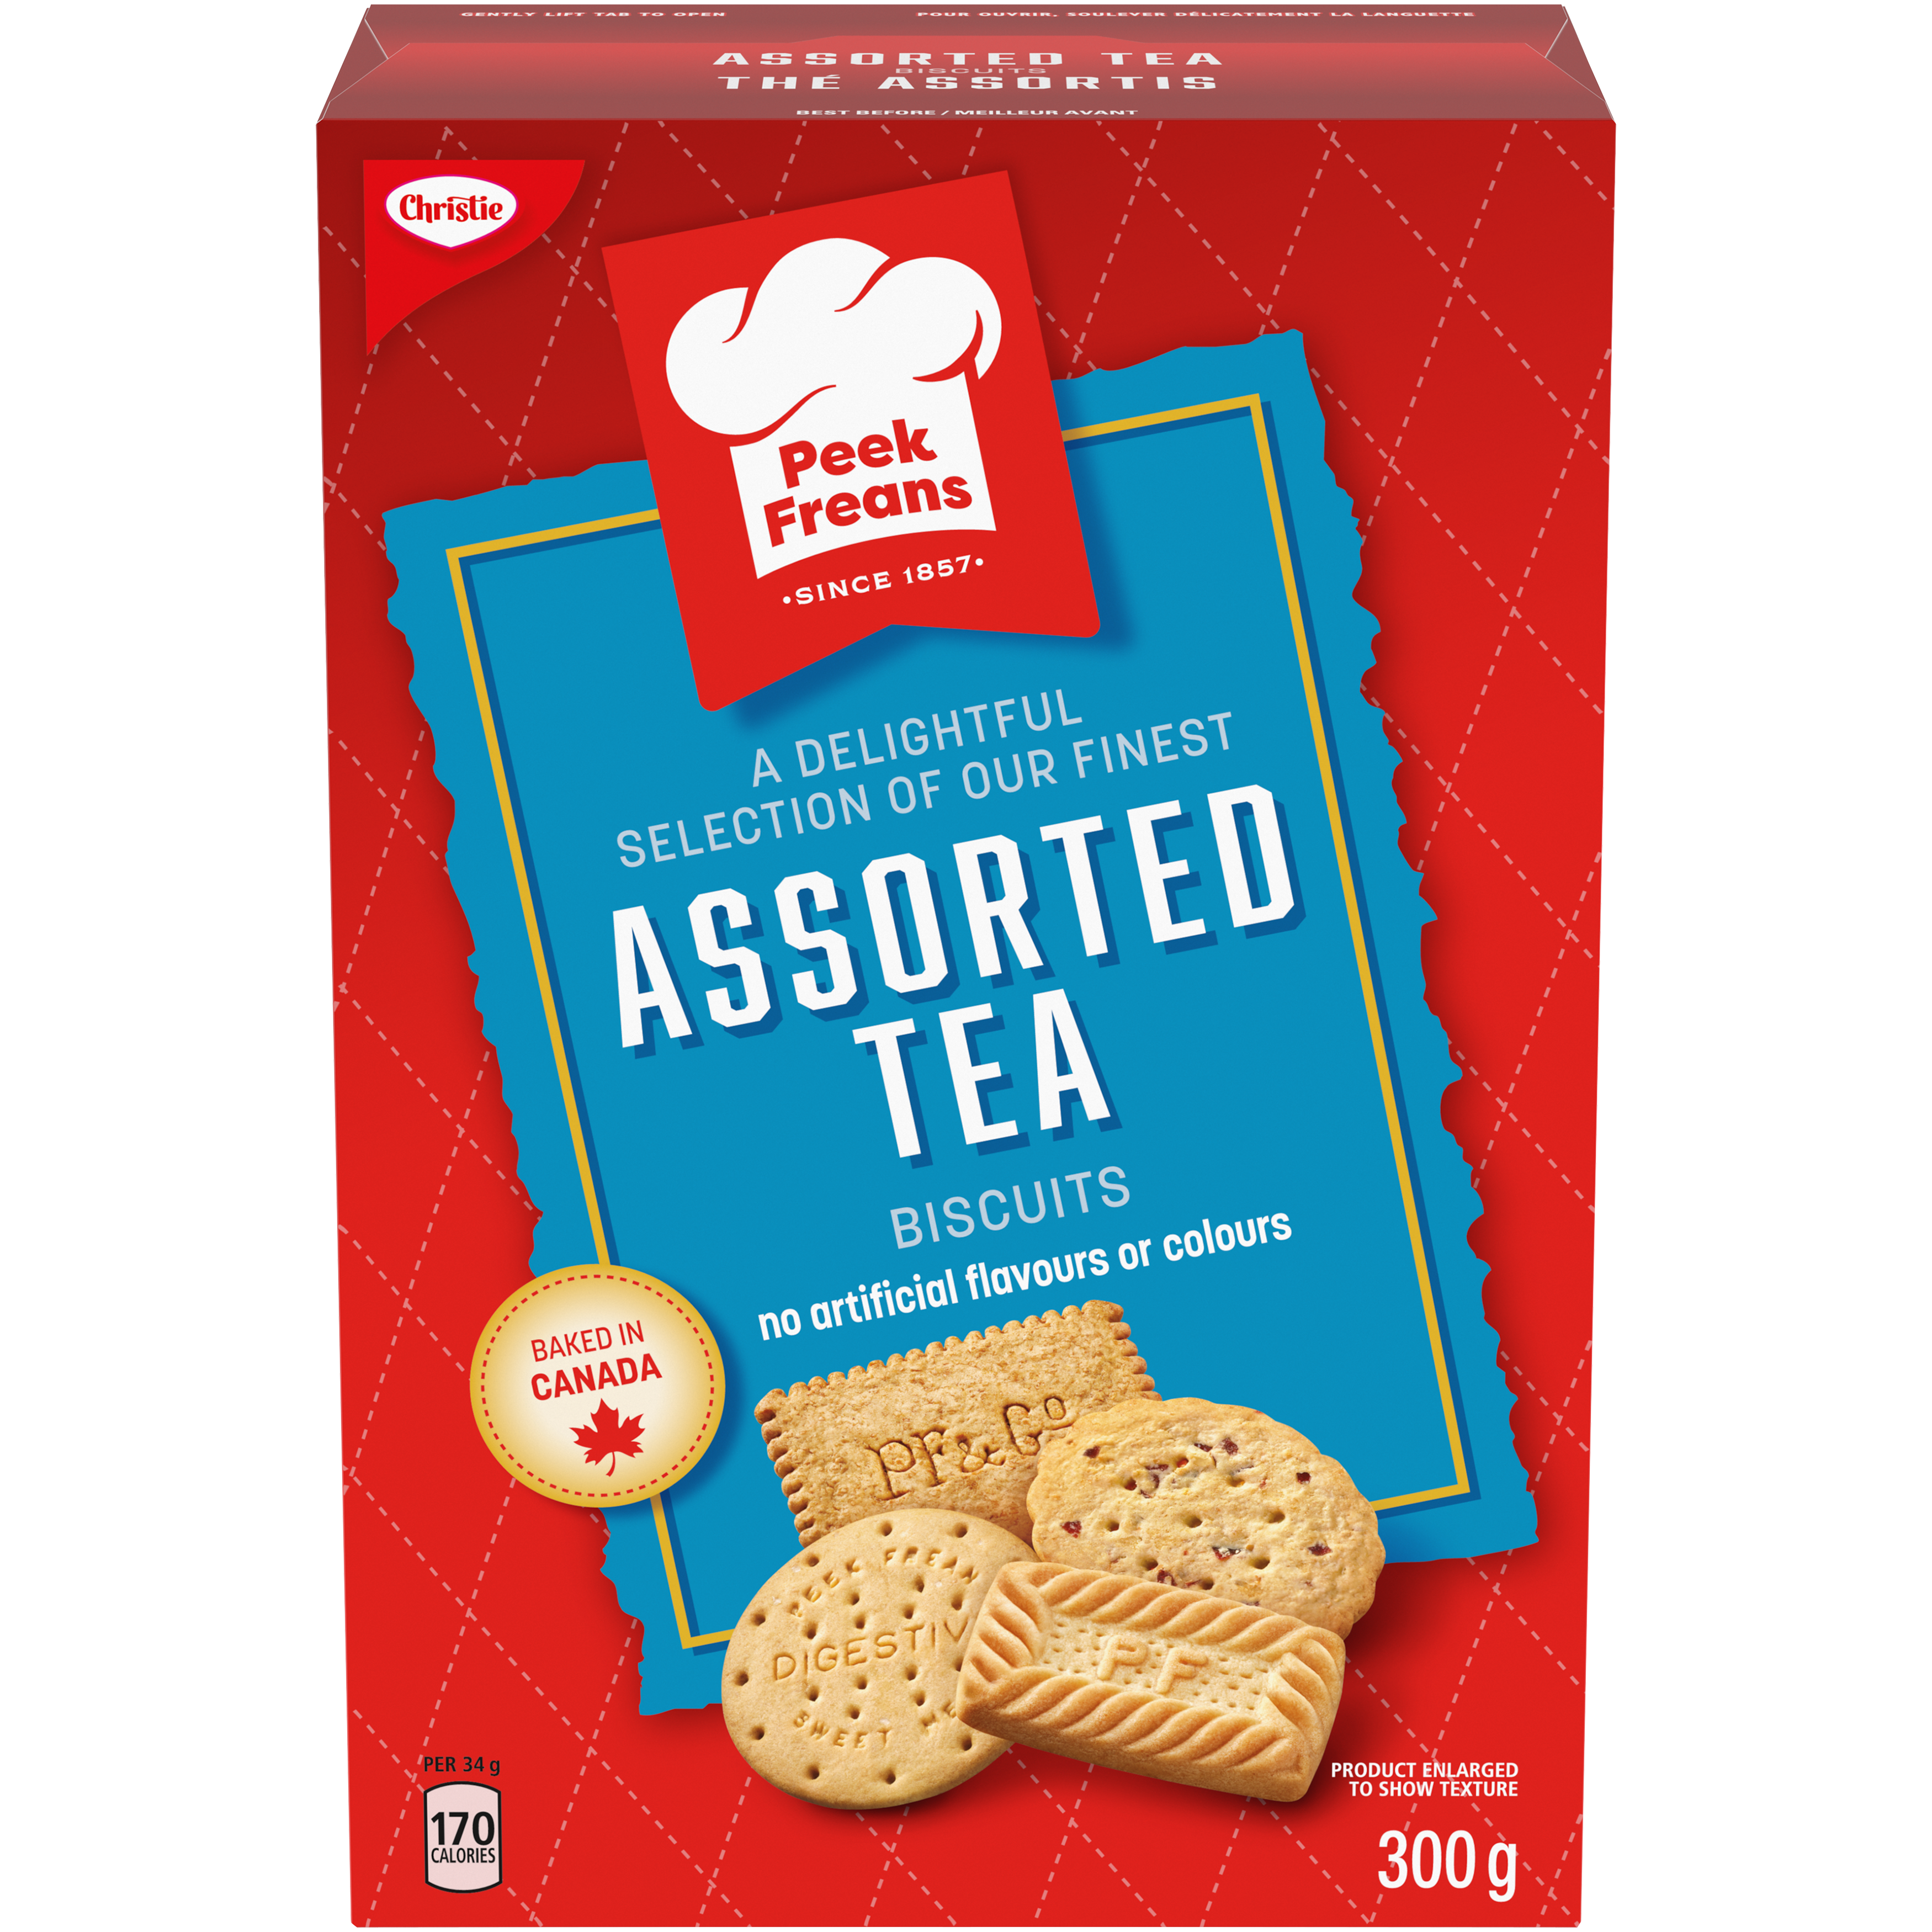 Peek Freans Assorted Tea Biscuits 300 G